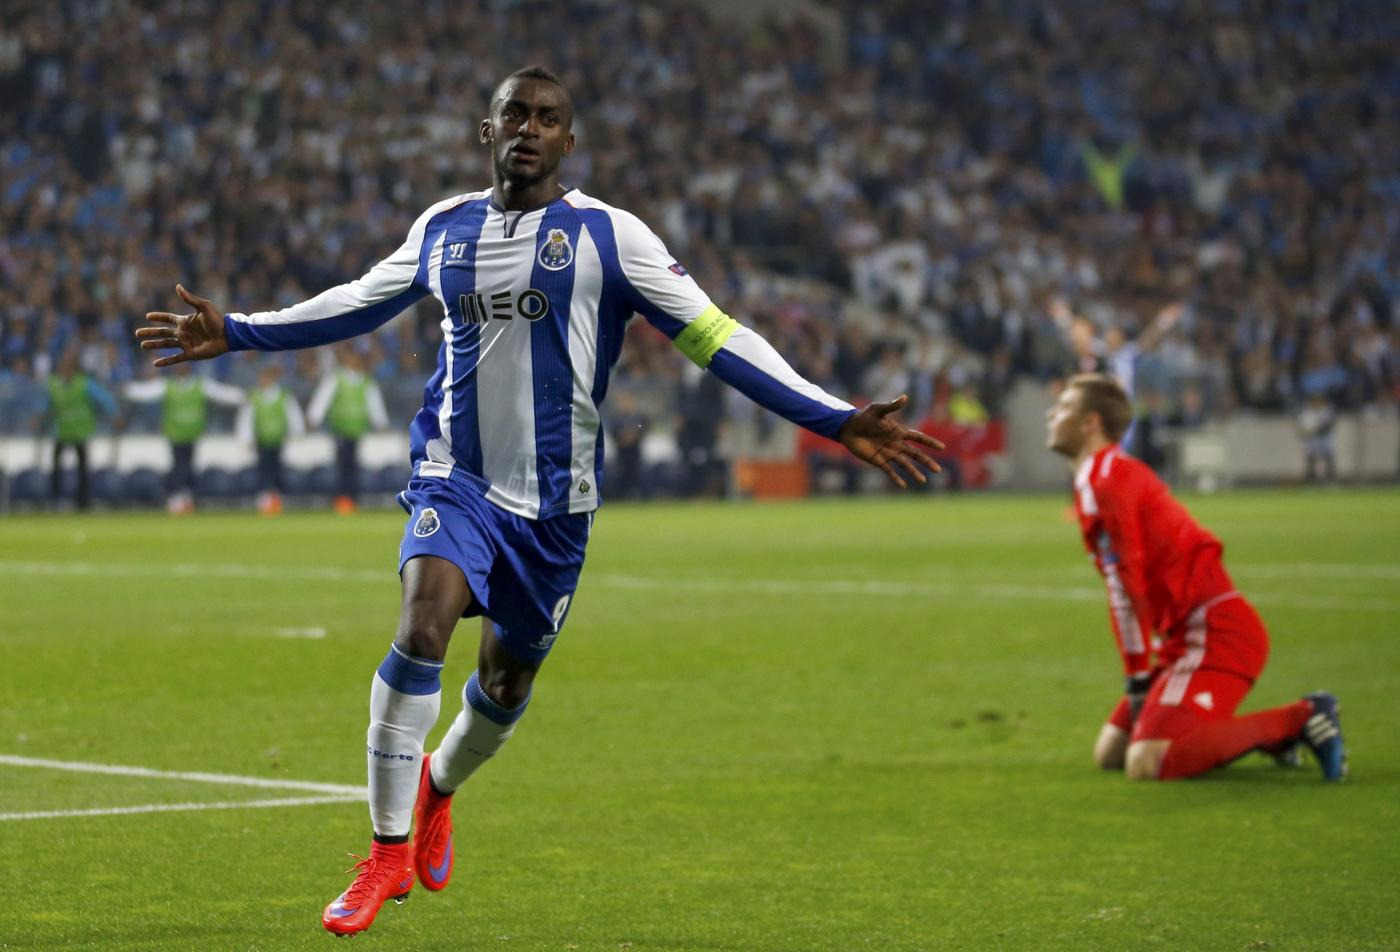 Arsenal 'believe Porto will accept £21.9m transfer offer for Jackson Martinez'